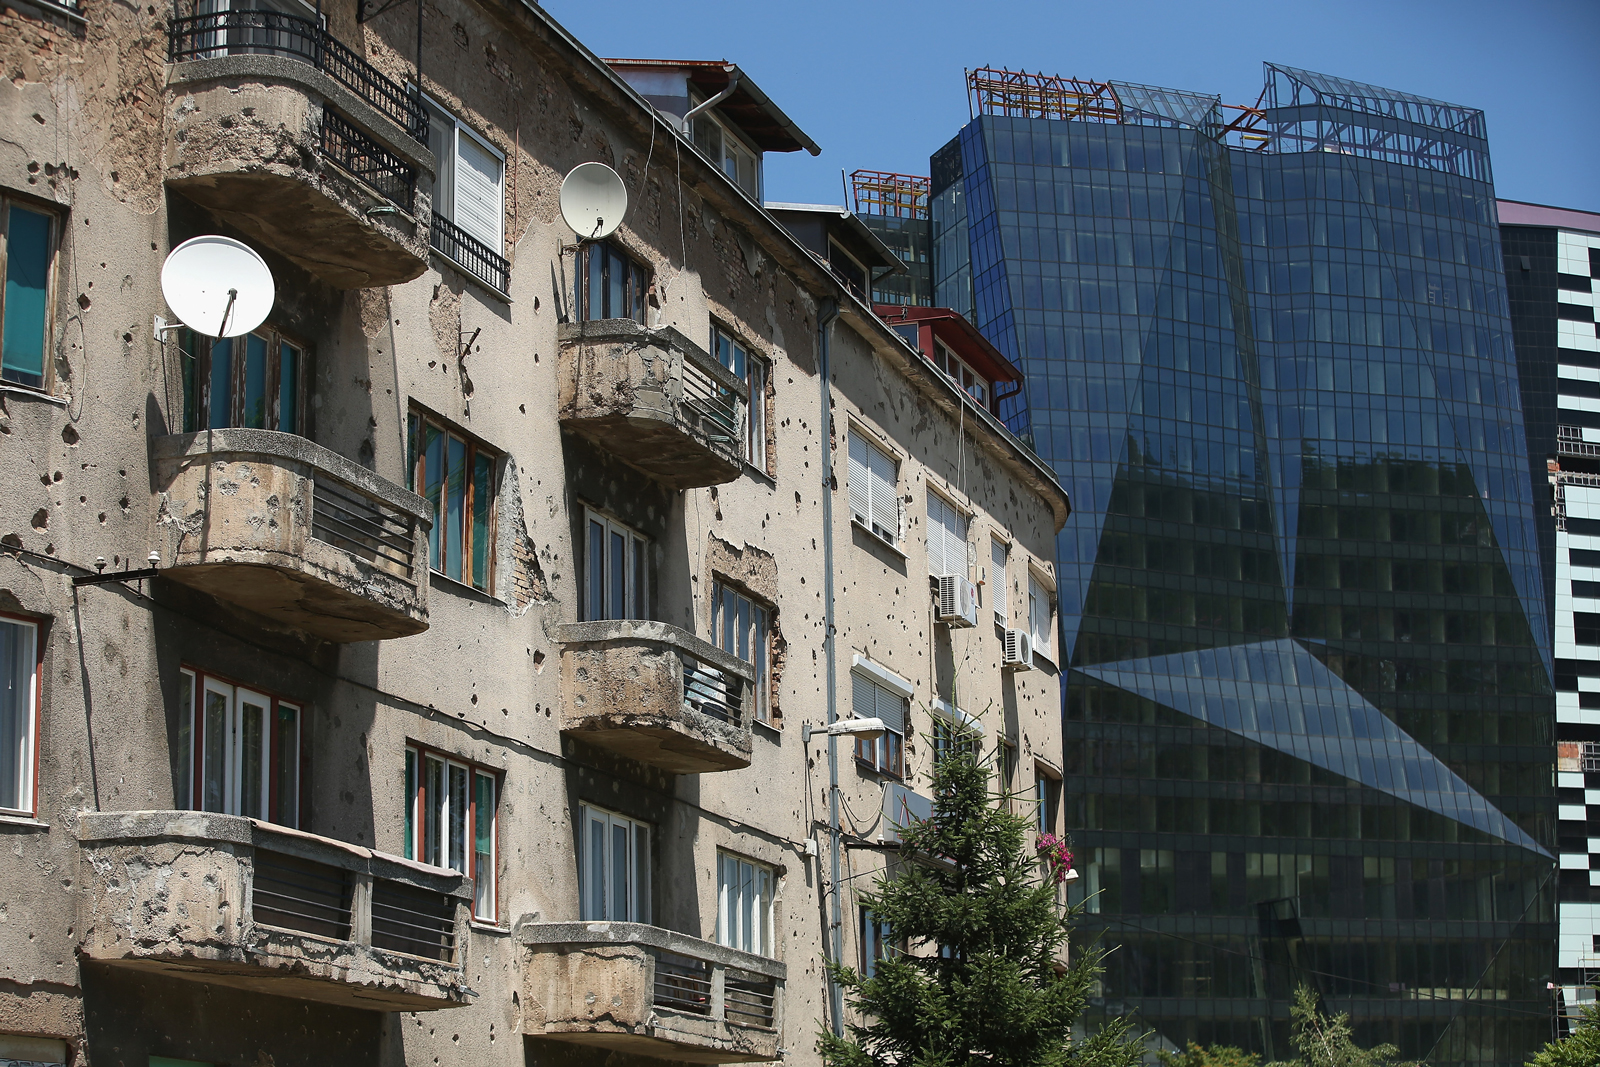 An apartment building with bullet holes from the 1992–1995 Bosnian War standing near a gleaming new office building, Sarajevo, Bosnia, June 29, 2014